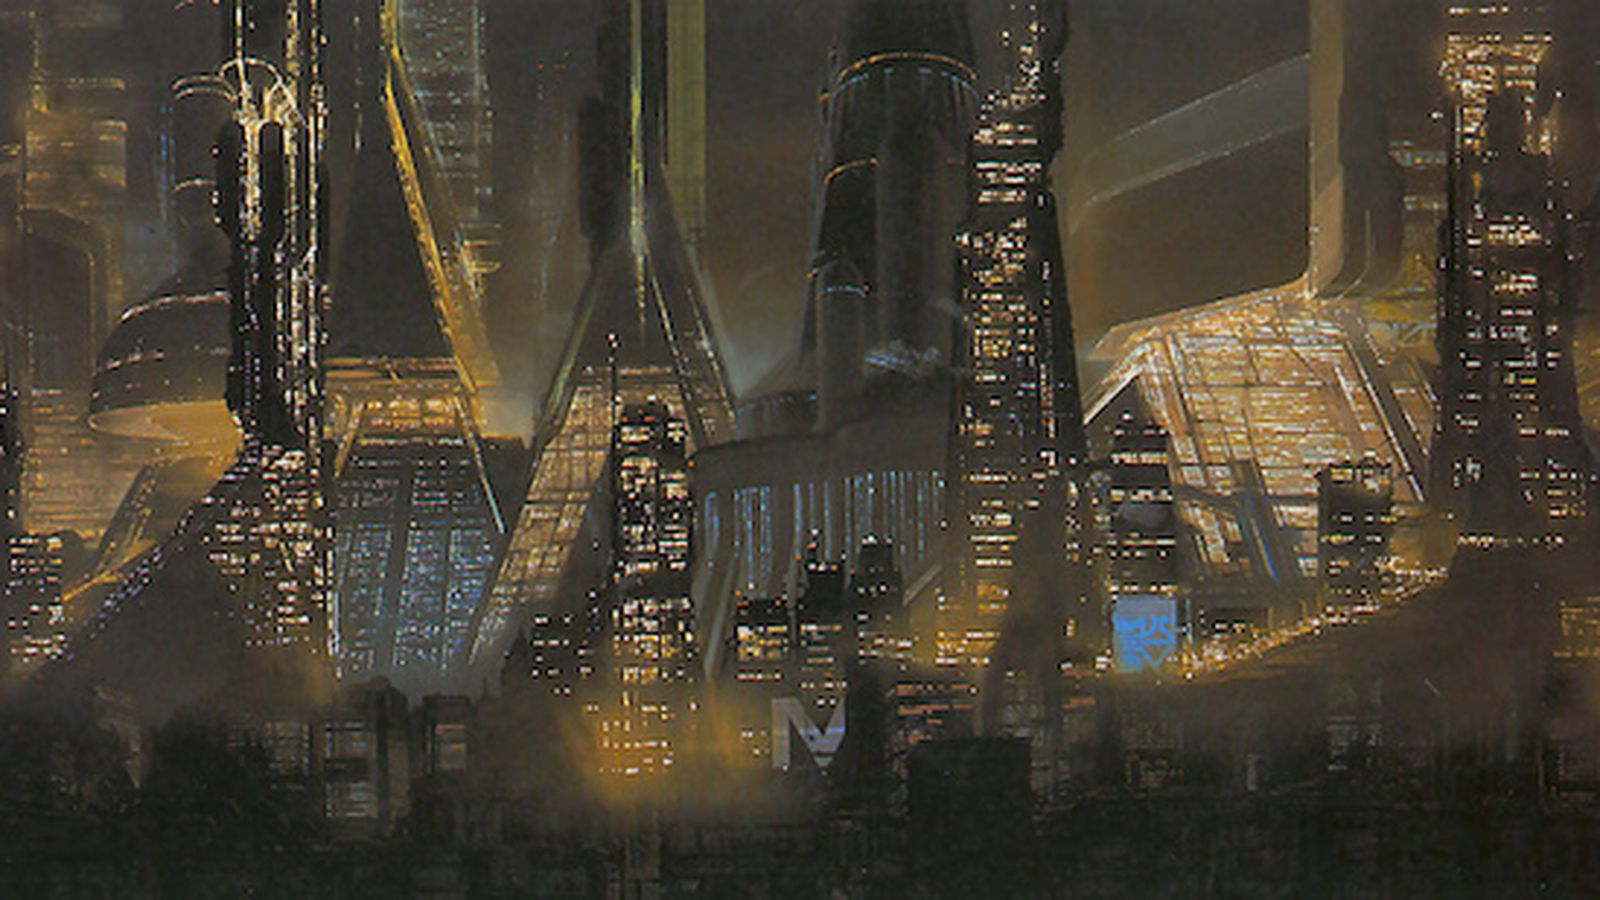 Syd Mead City Architecture Blade Runner Design Future moreover Installing A Small Dishwashers For Tiny Kitchen Design also 57c00030b3ec0e96 Sweet Home 3d besides Tiny House Interior besides Tre Livelli. on design a tiny house interior